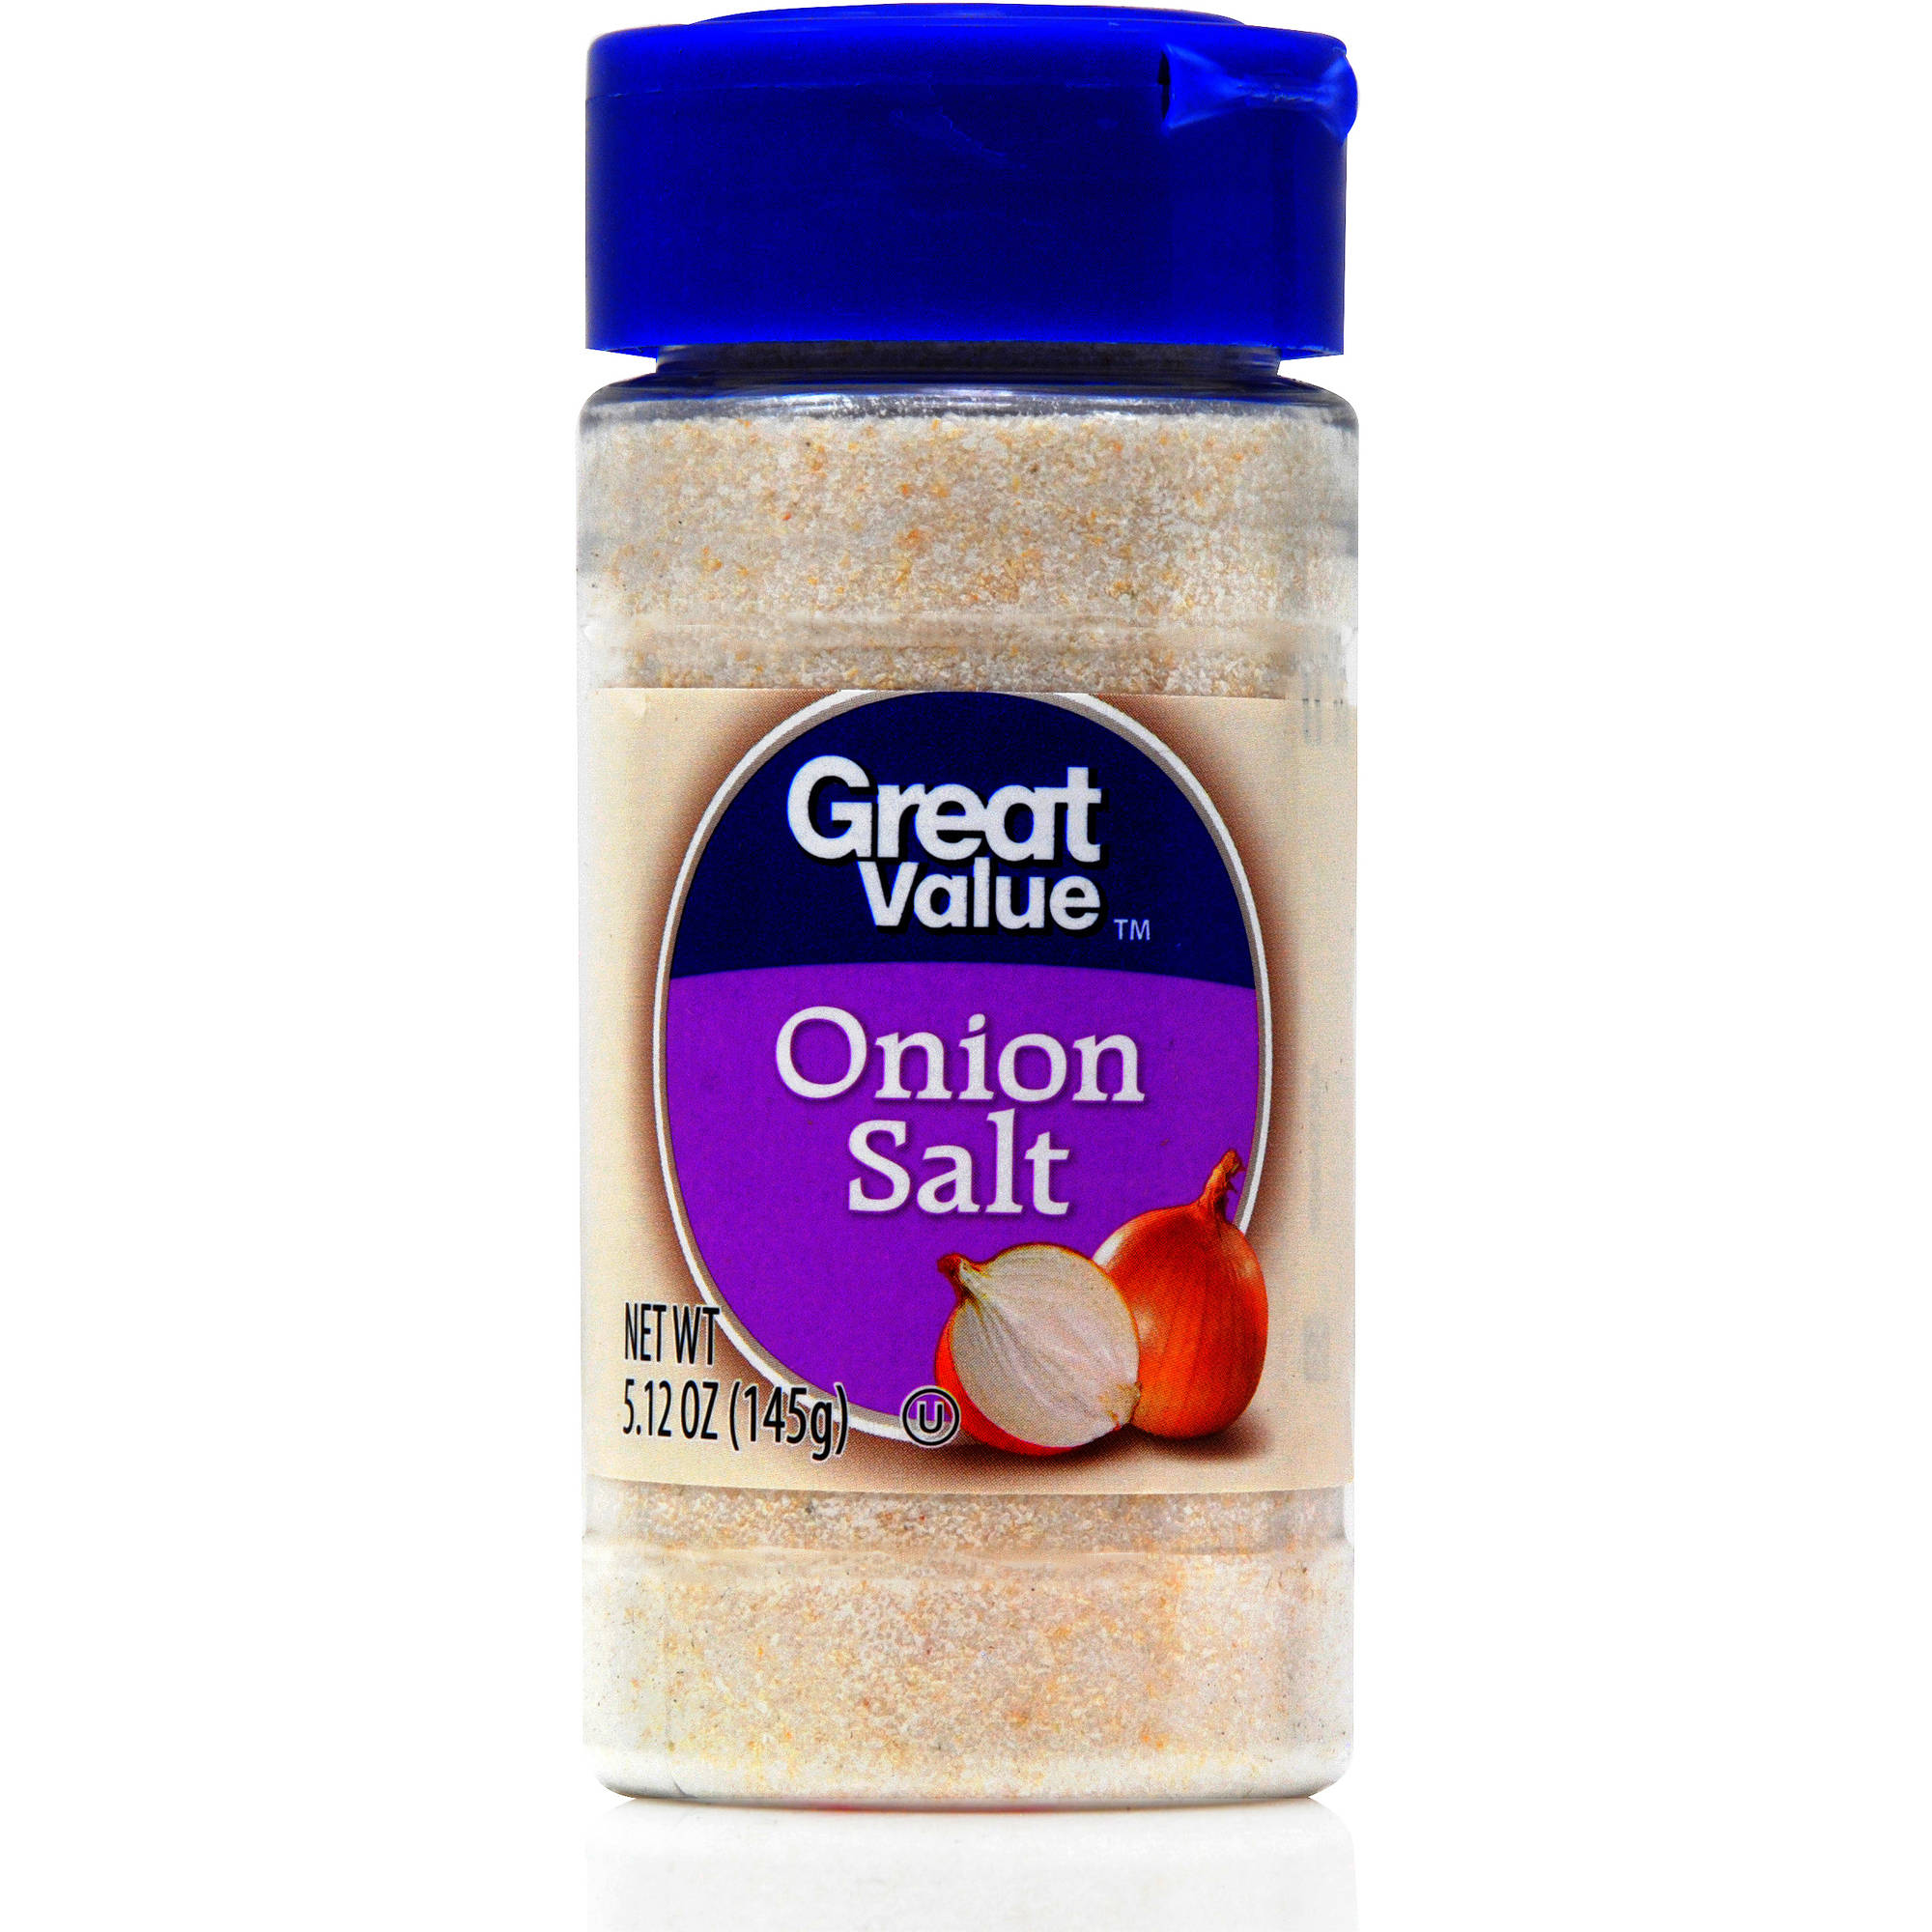 Great Value Onion Salt, 5.12 oz